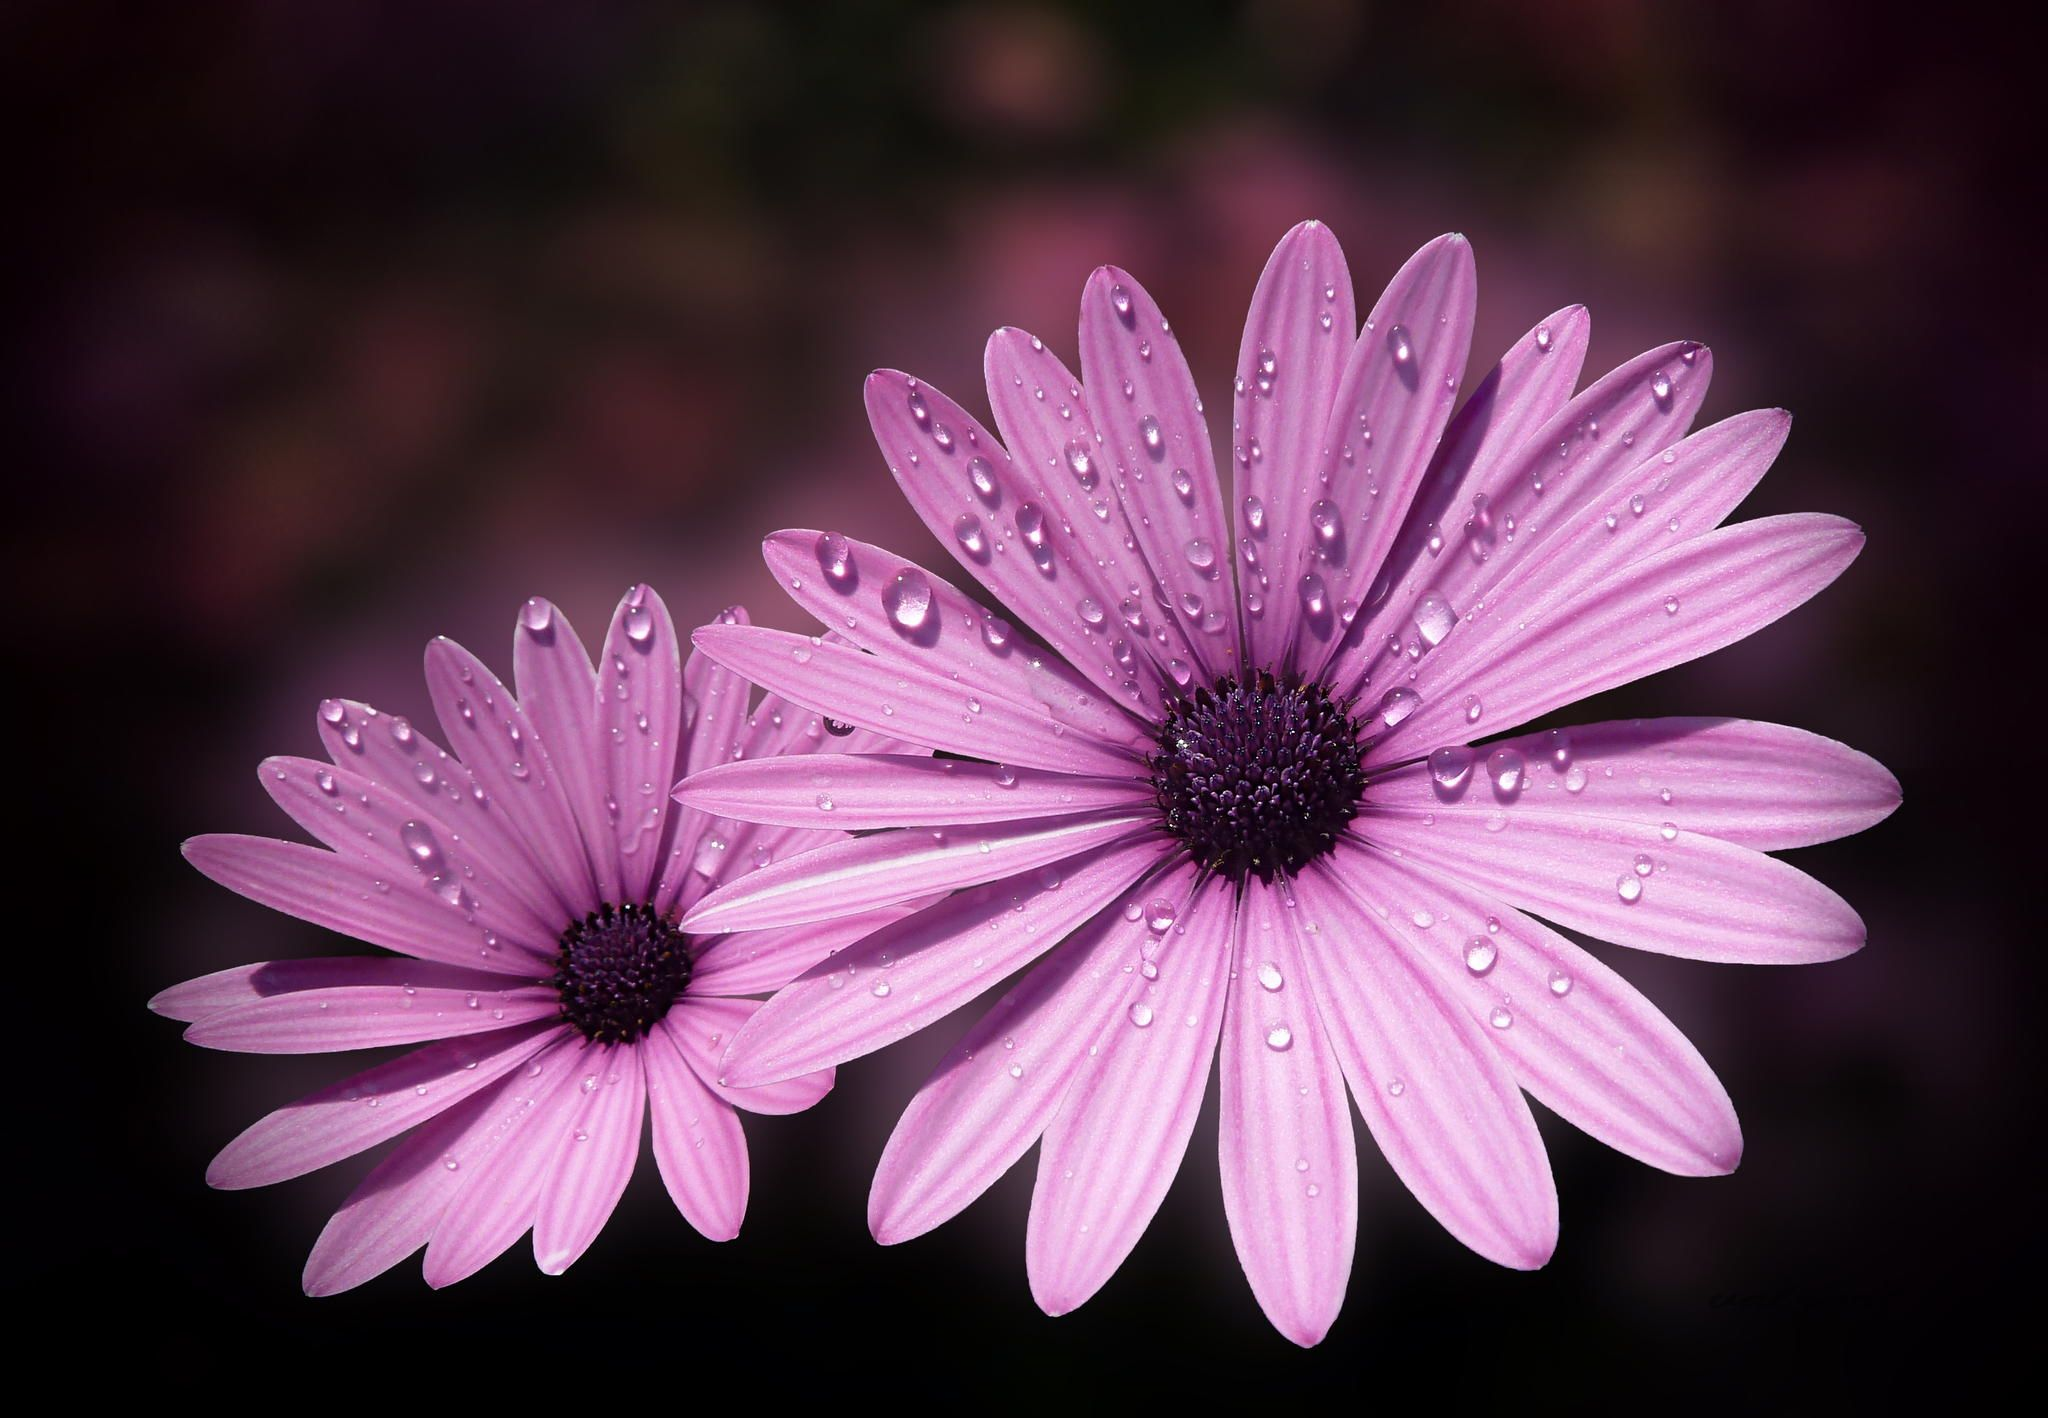 Photograph Dew drops on Daisies by Valerie Anne Kelly on 500px